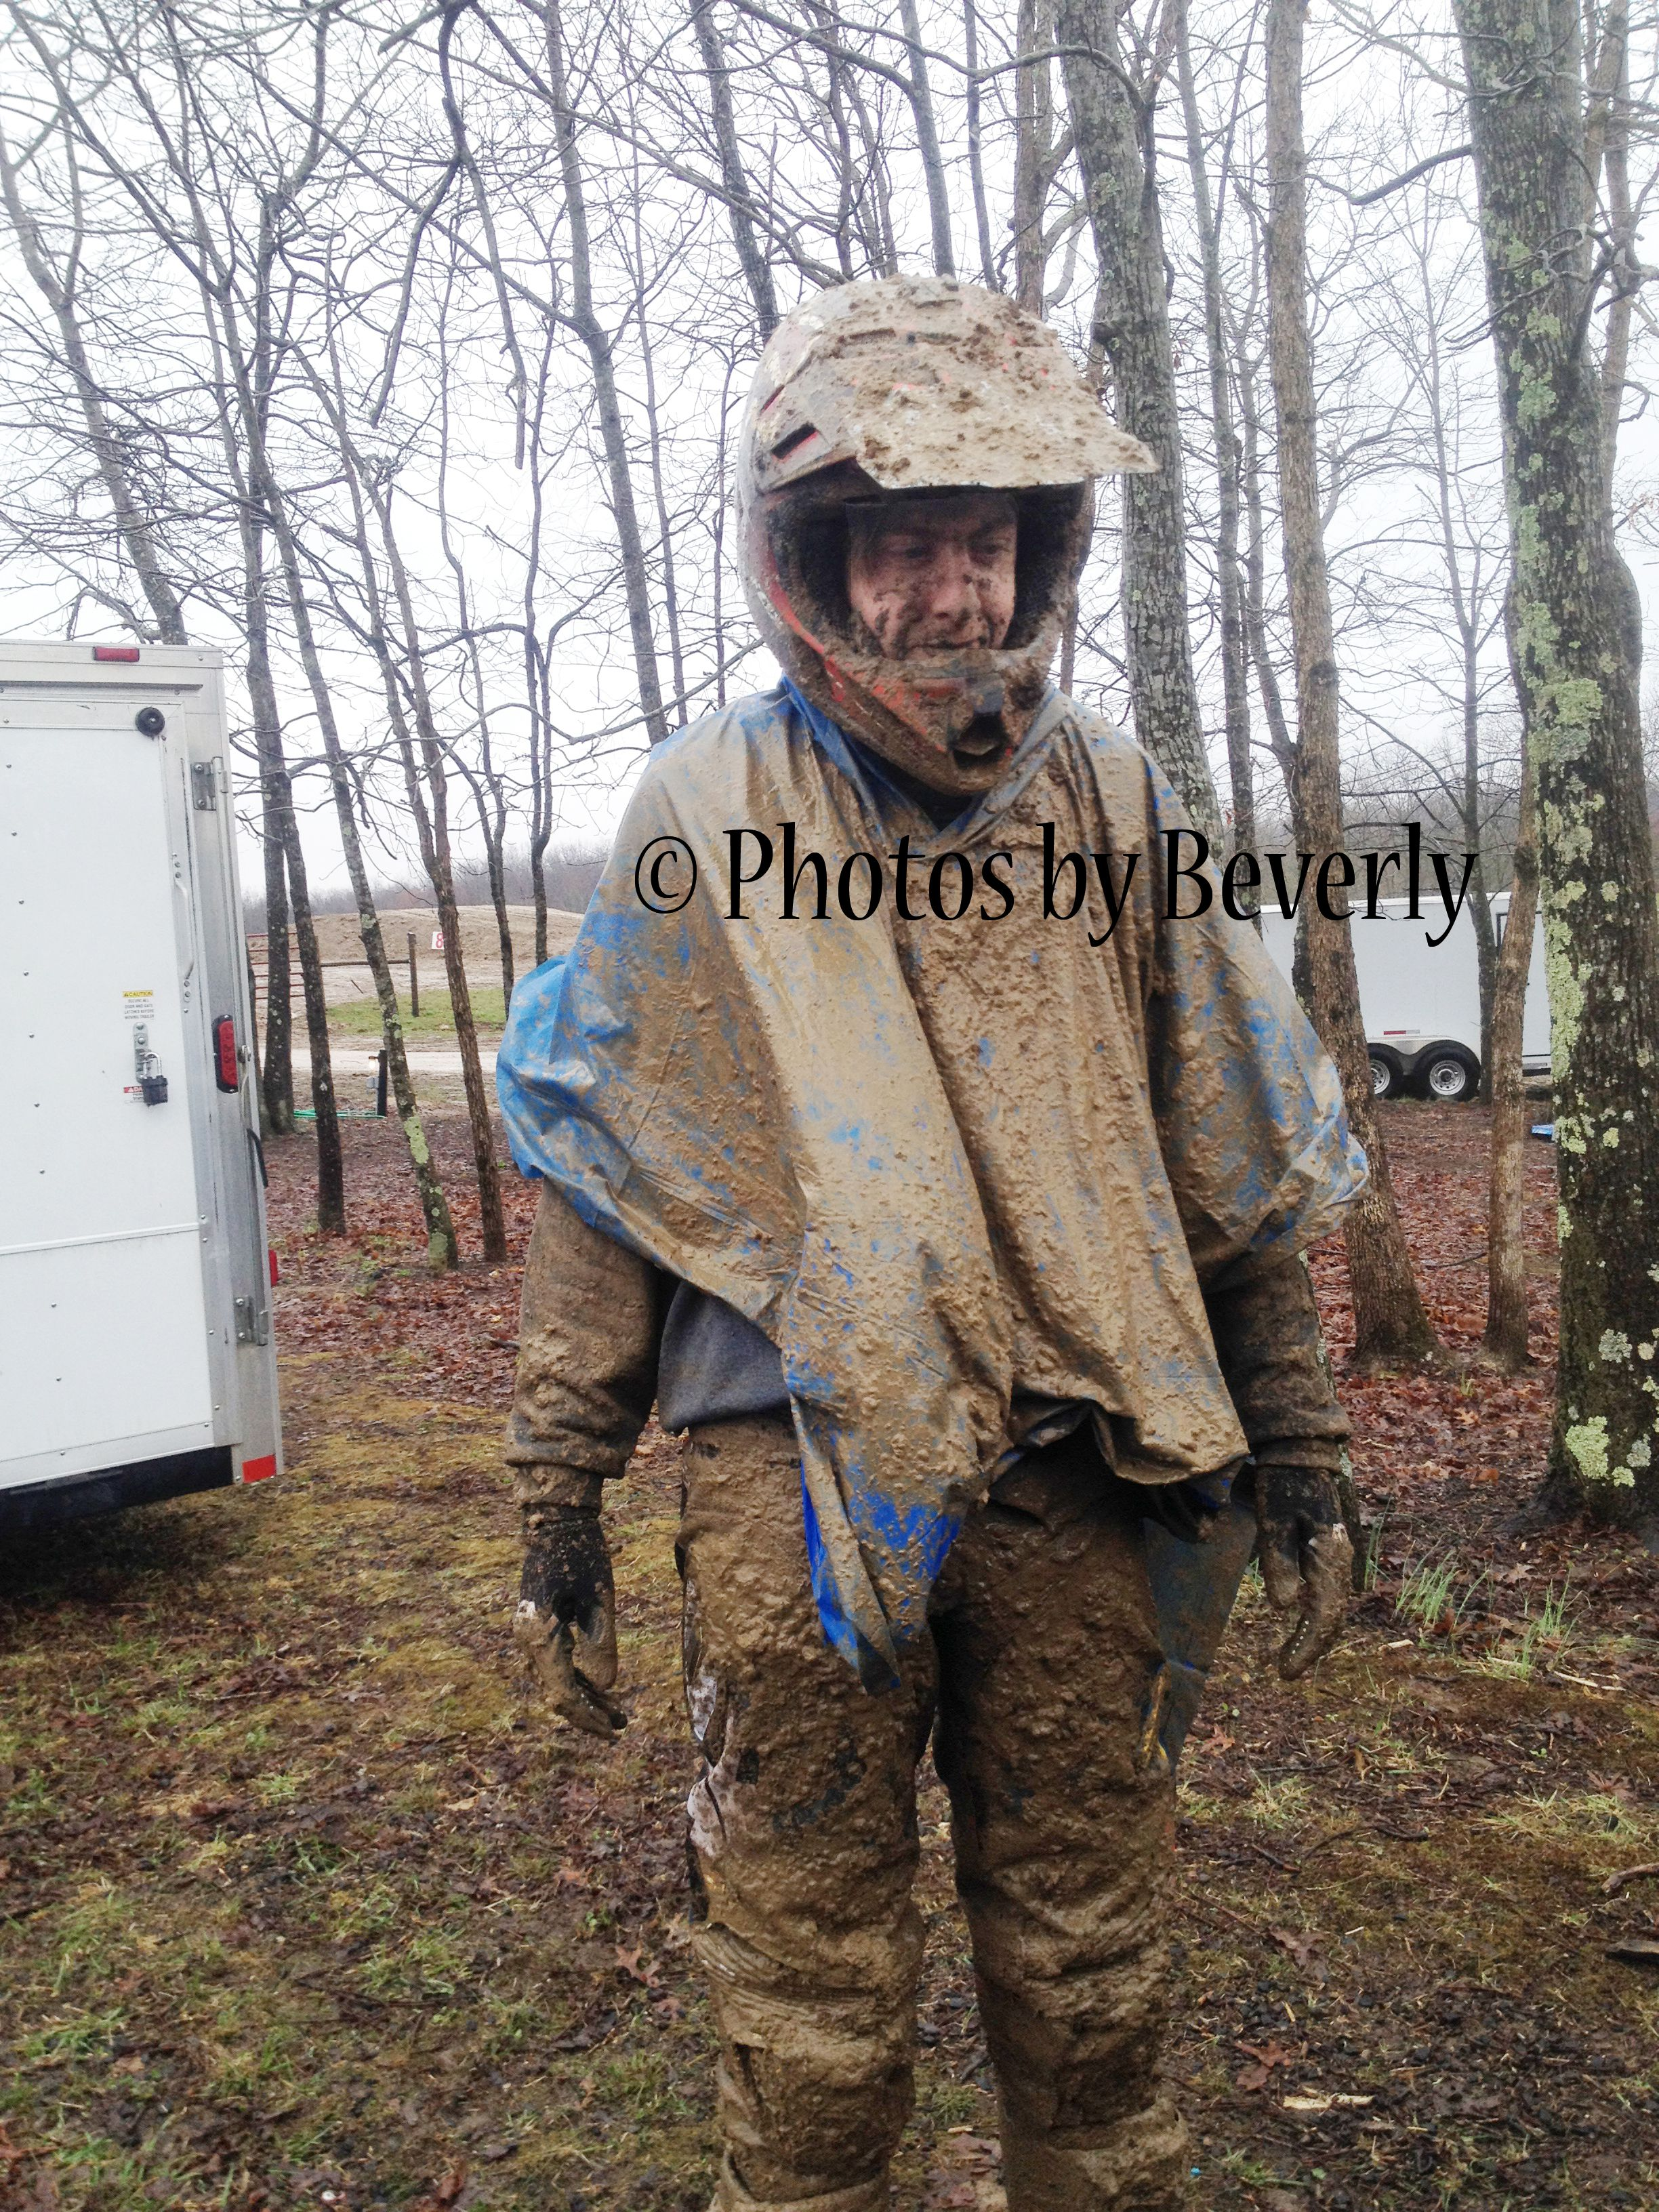 After a Mud race